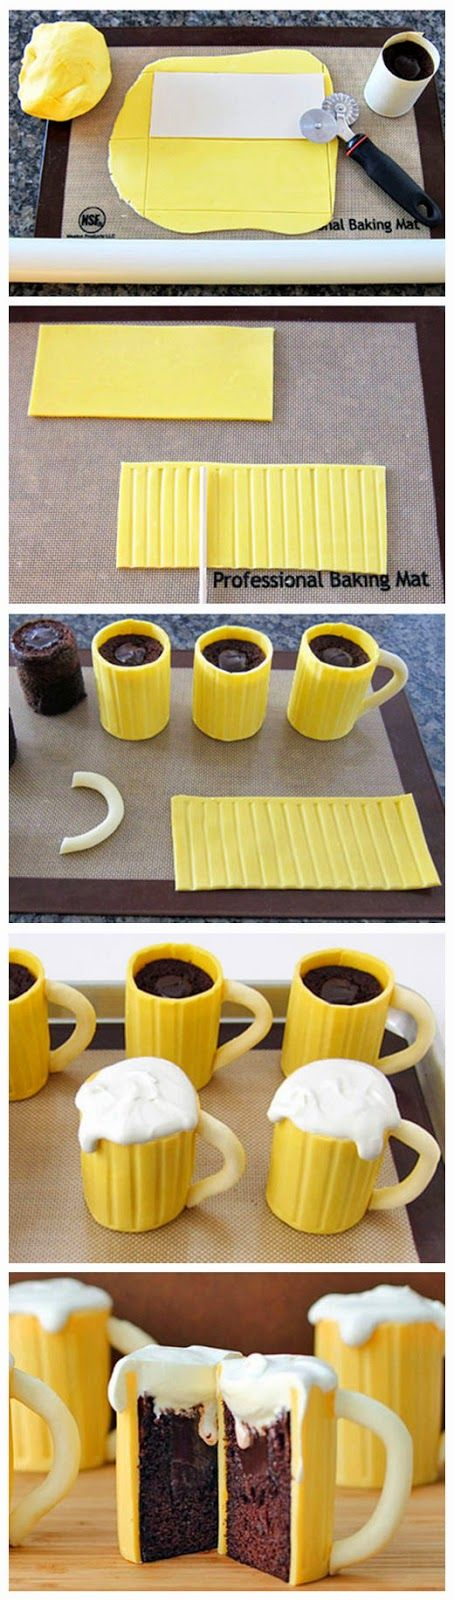 There will be a reason to make these.  Maybe root beer mugs or coffee.